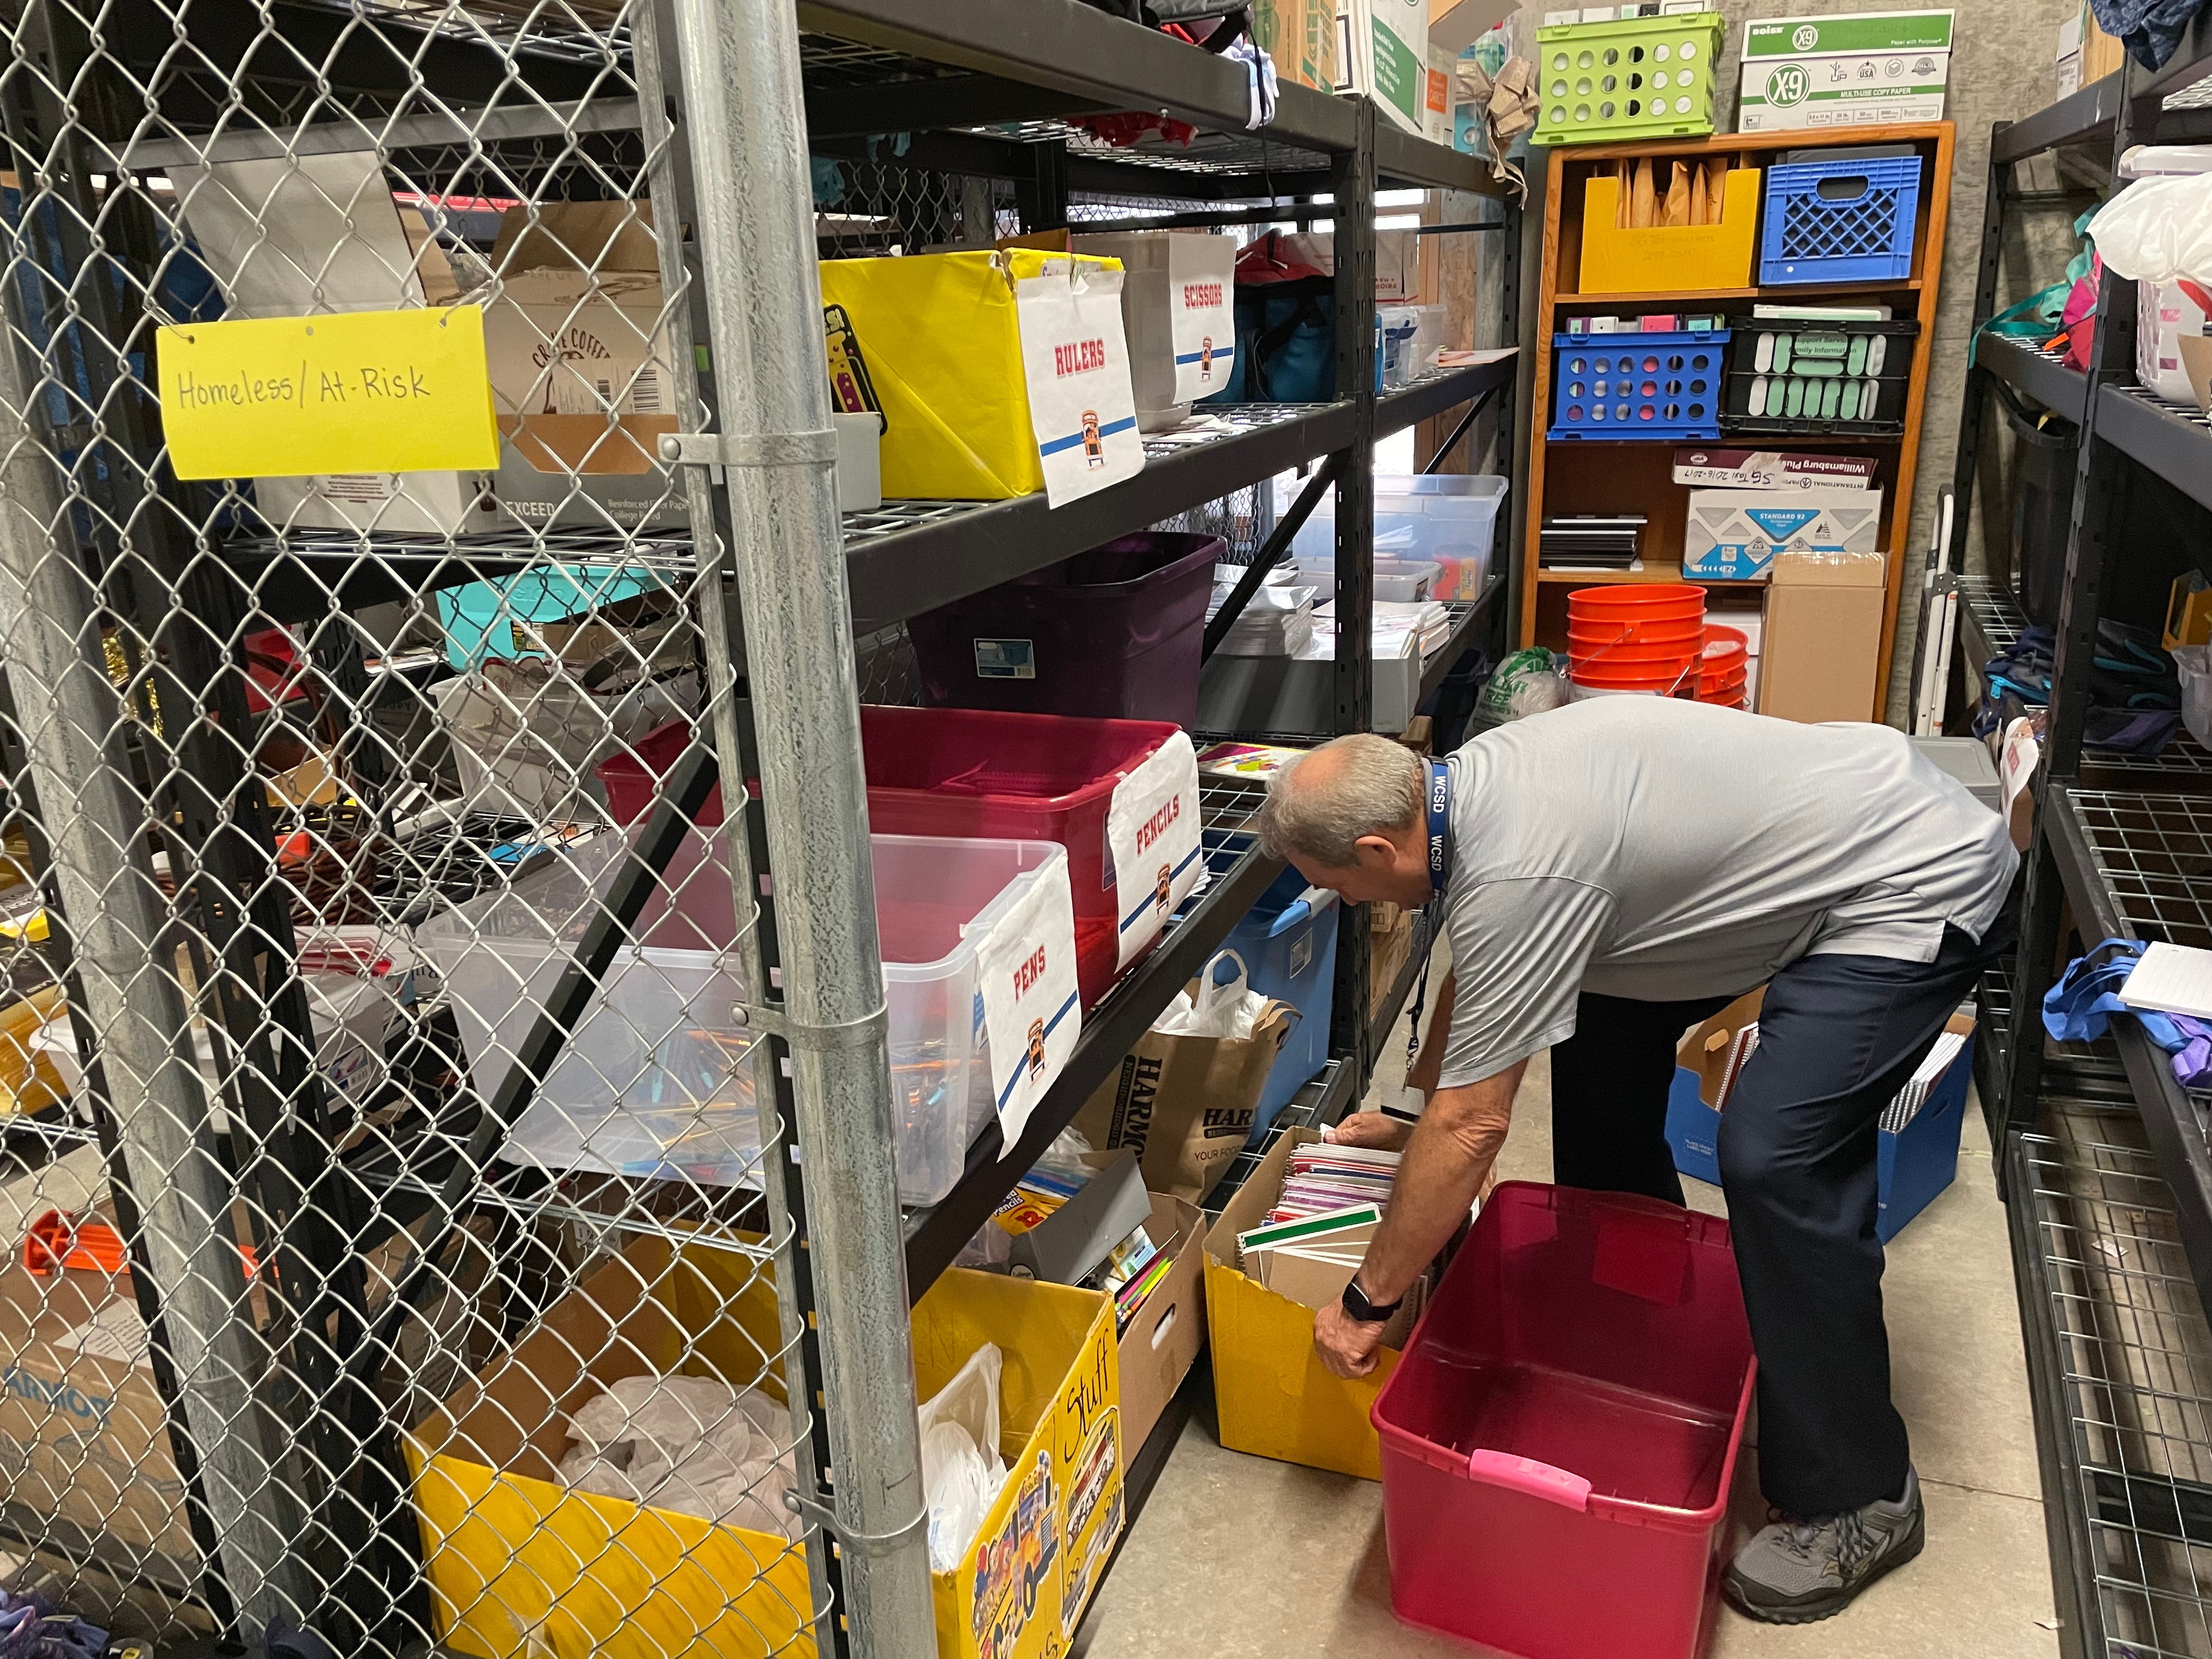 Mike Carr, homeless liaison for the Washington County School District, sorts through boxes of donated school supplies the week before classes resume in August. The school district's count of homeless students dropped by more than a third during the pandemic.